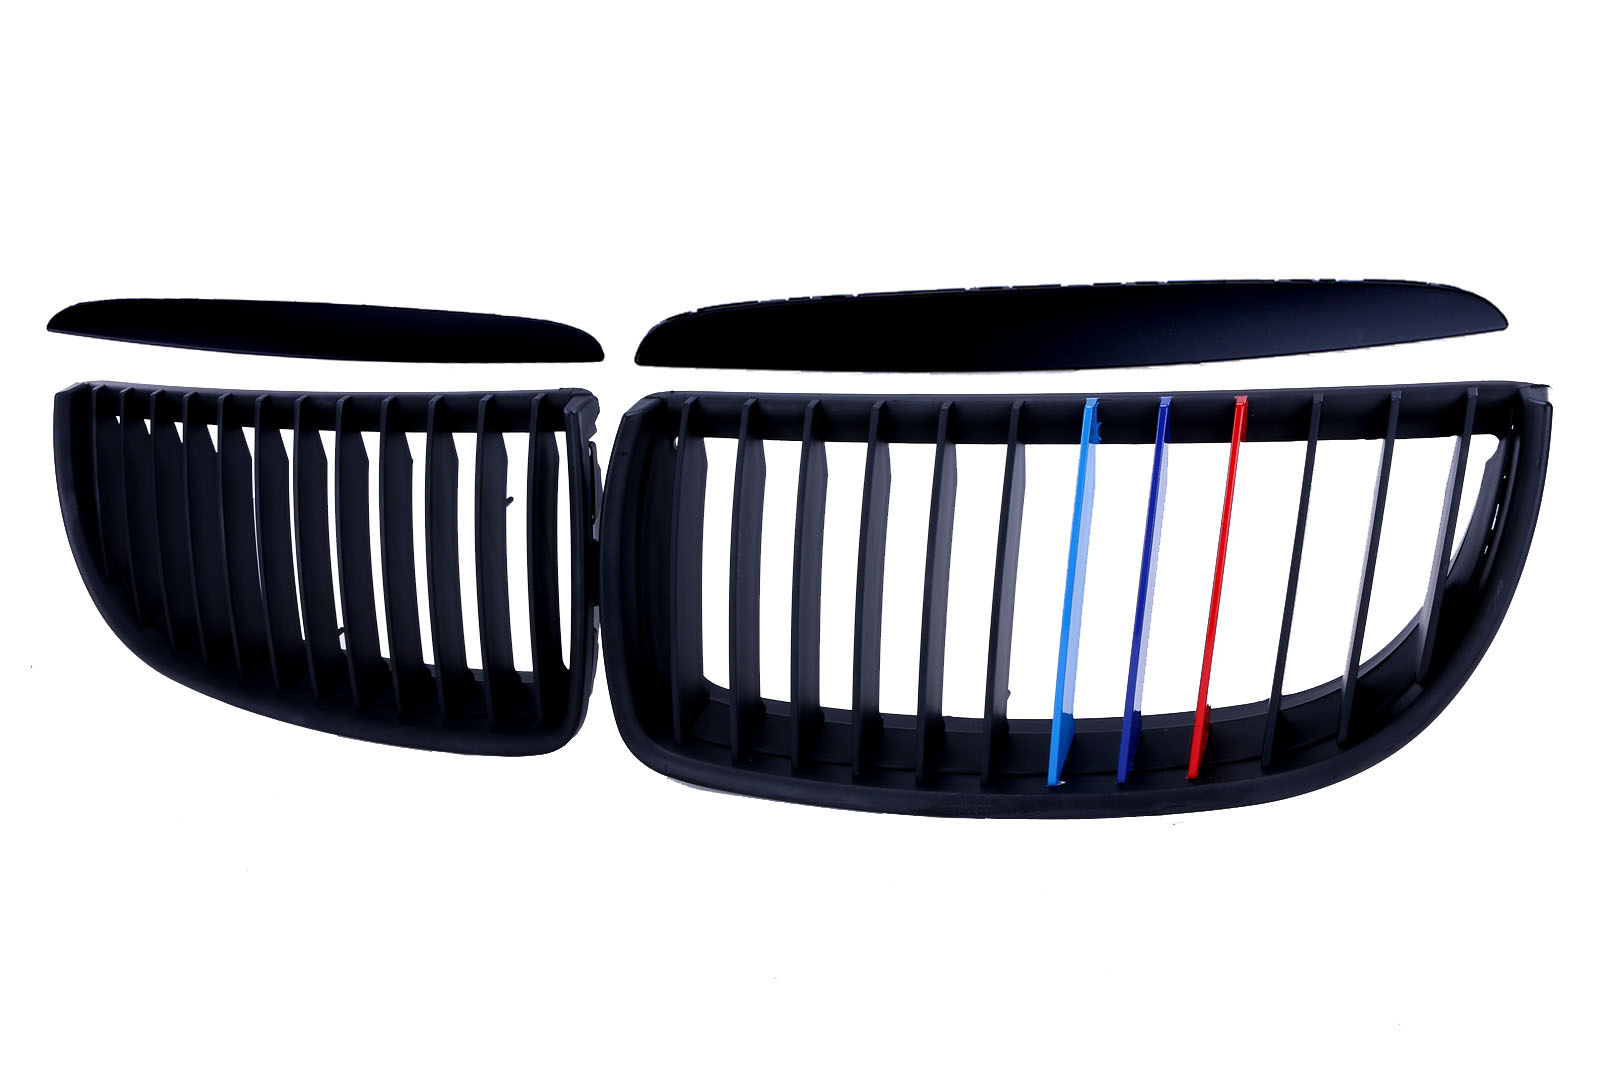 ФОТО Mattle Black for BMW E90 / E91 Front Kidney Grille Grill 2005-2008 330i 325i 320i 328i //